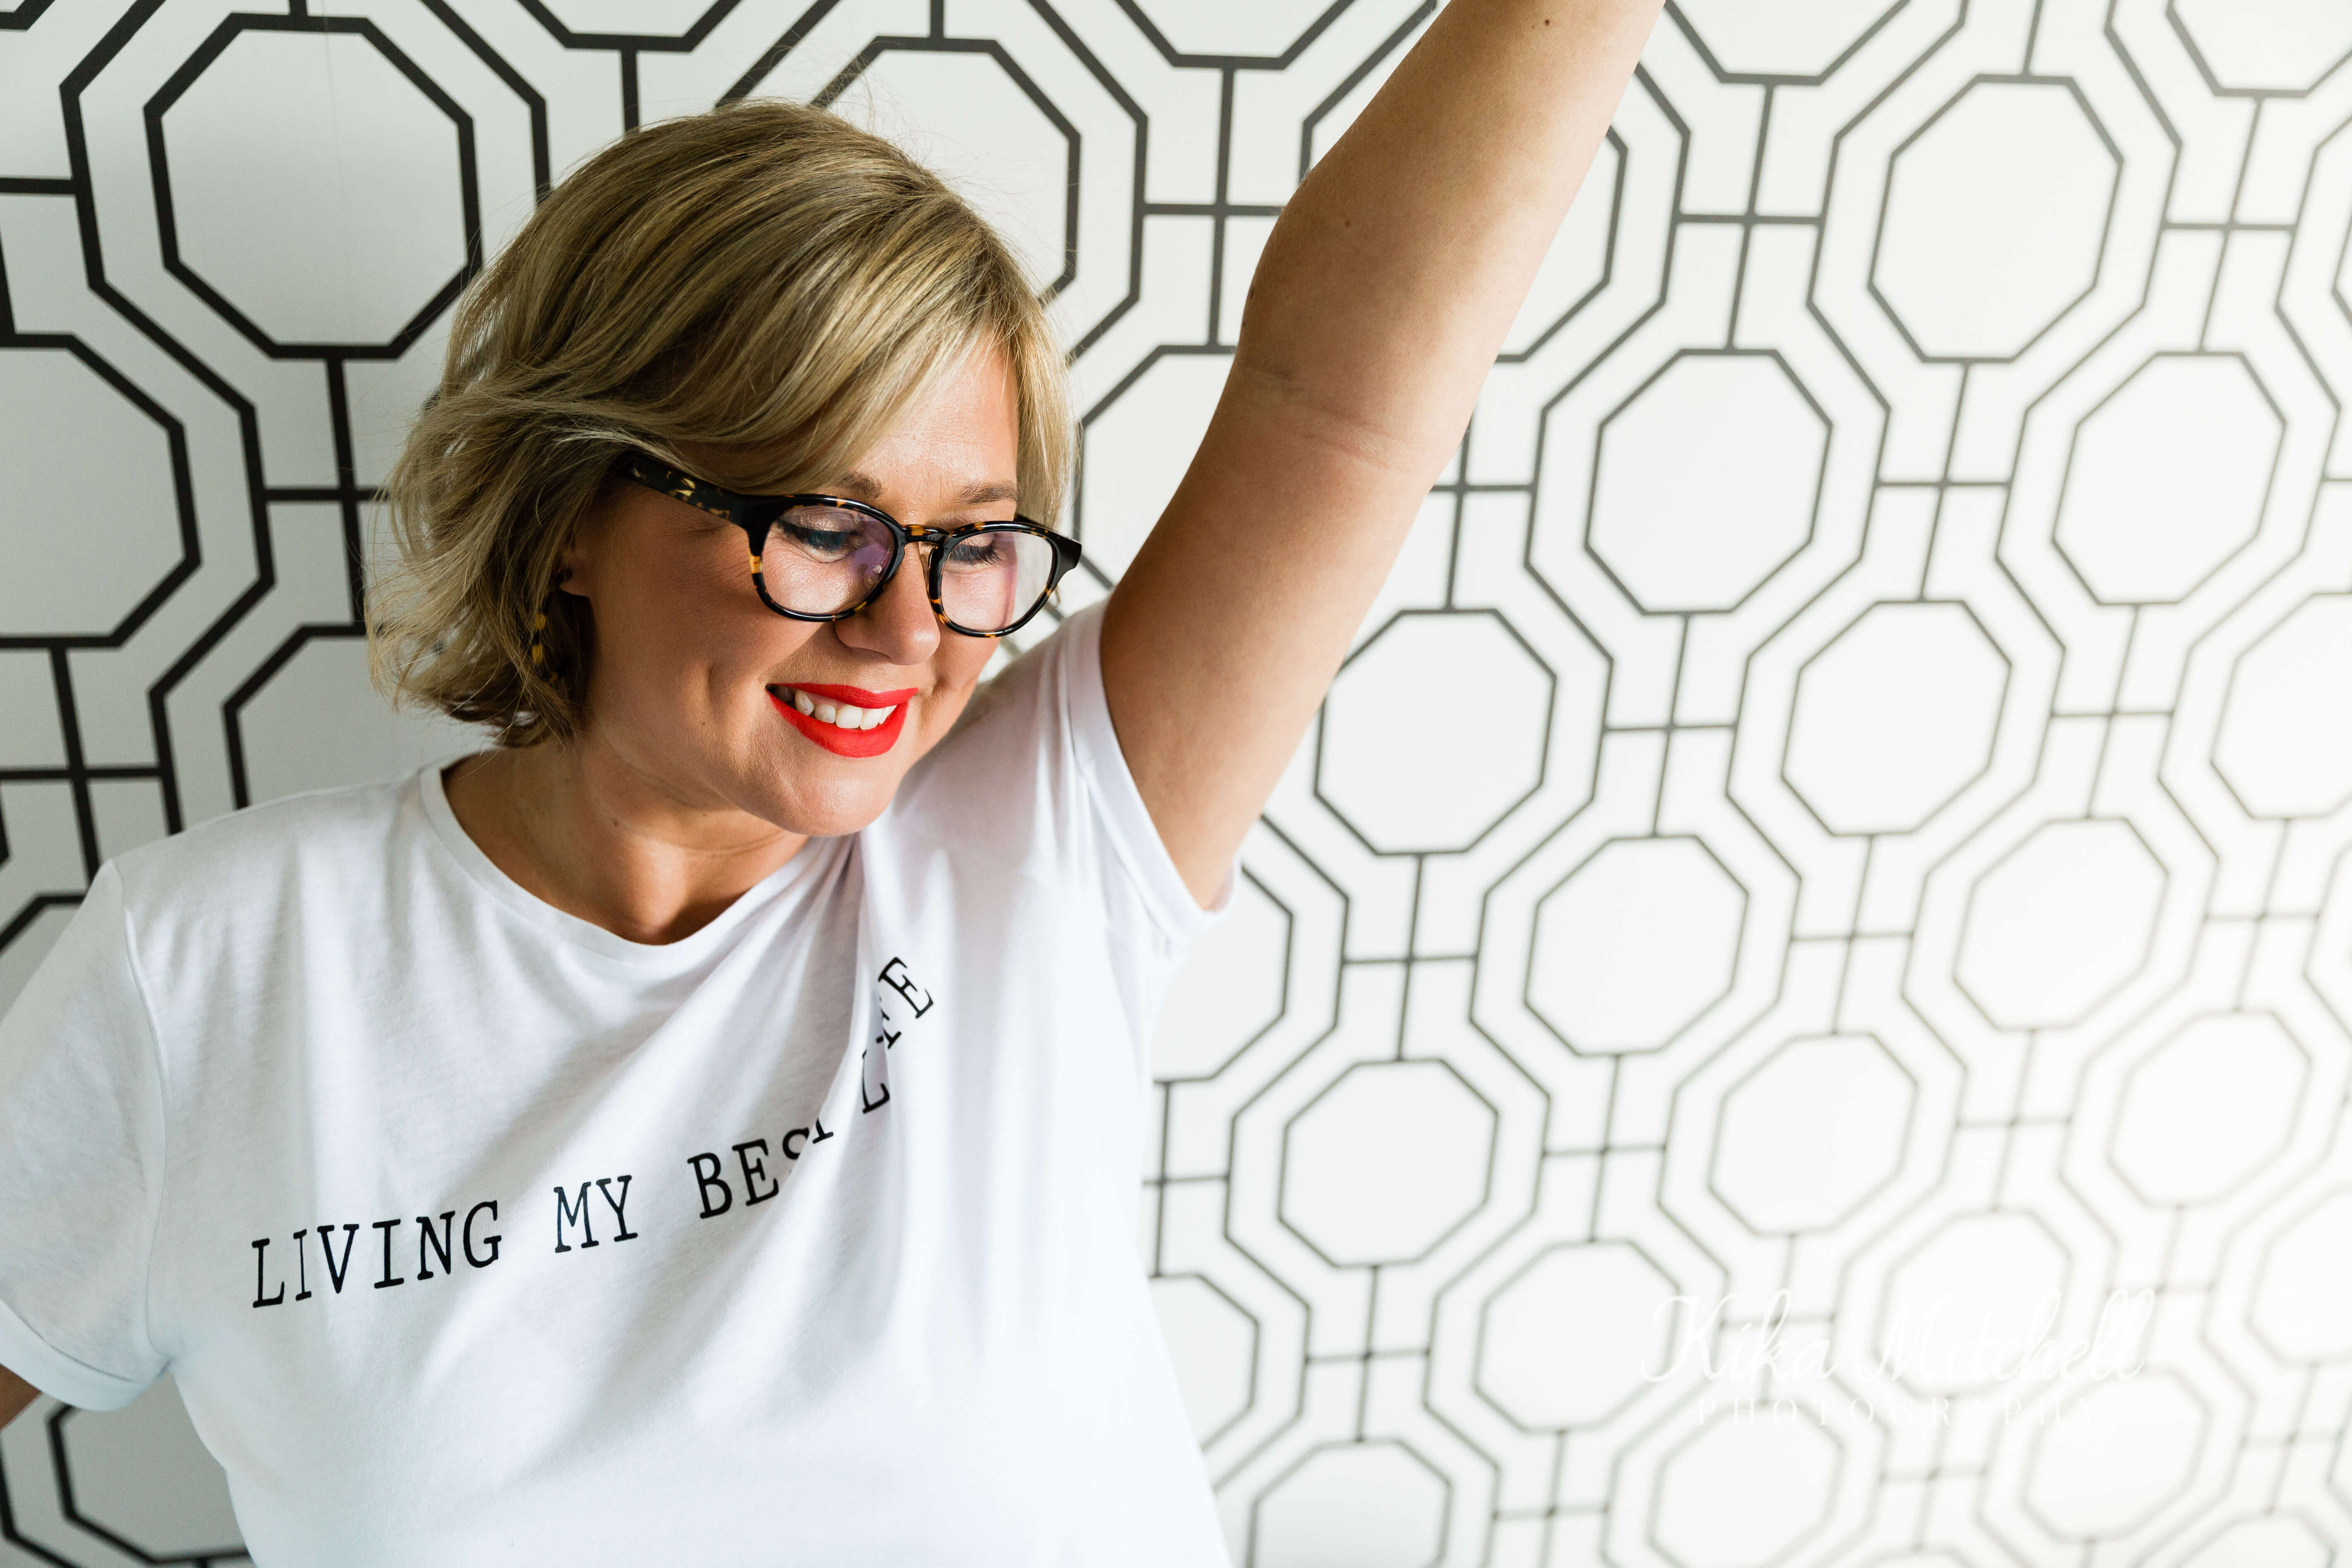 Nicola Lewis of TGCO with arm up on bold graphic wallpaper for personal branding shoot by Chelmsford photographer Kika Mitchell Photographer